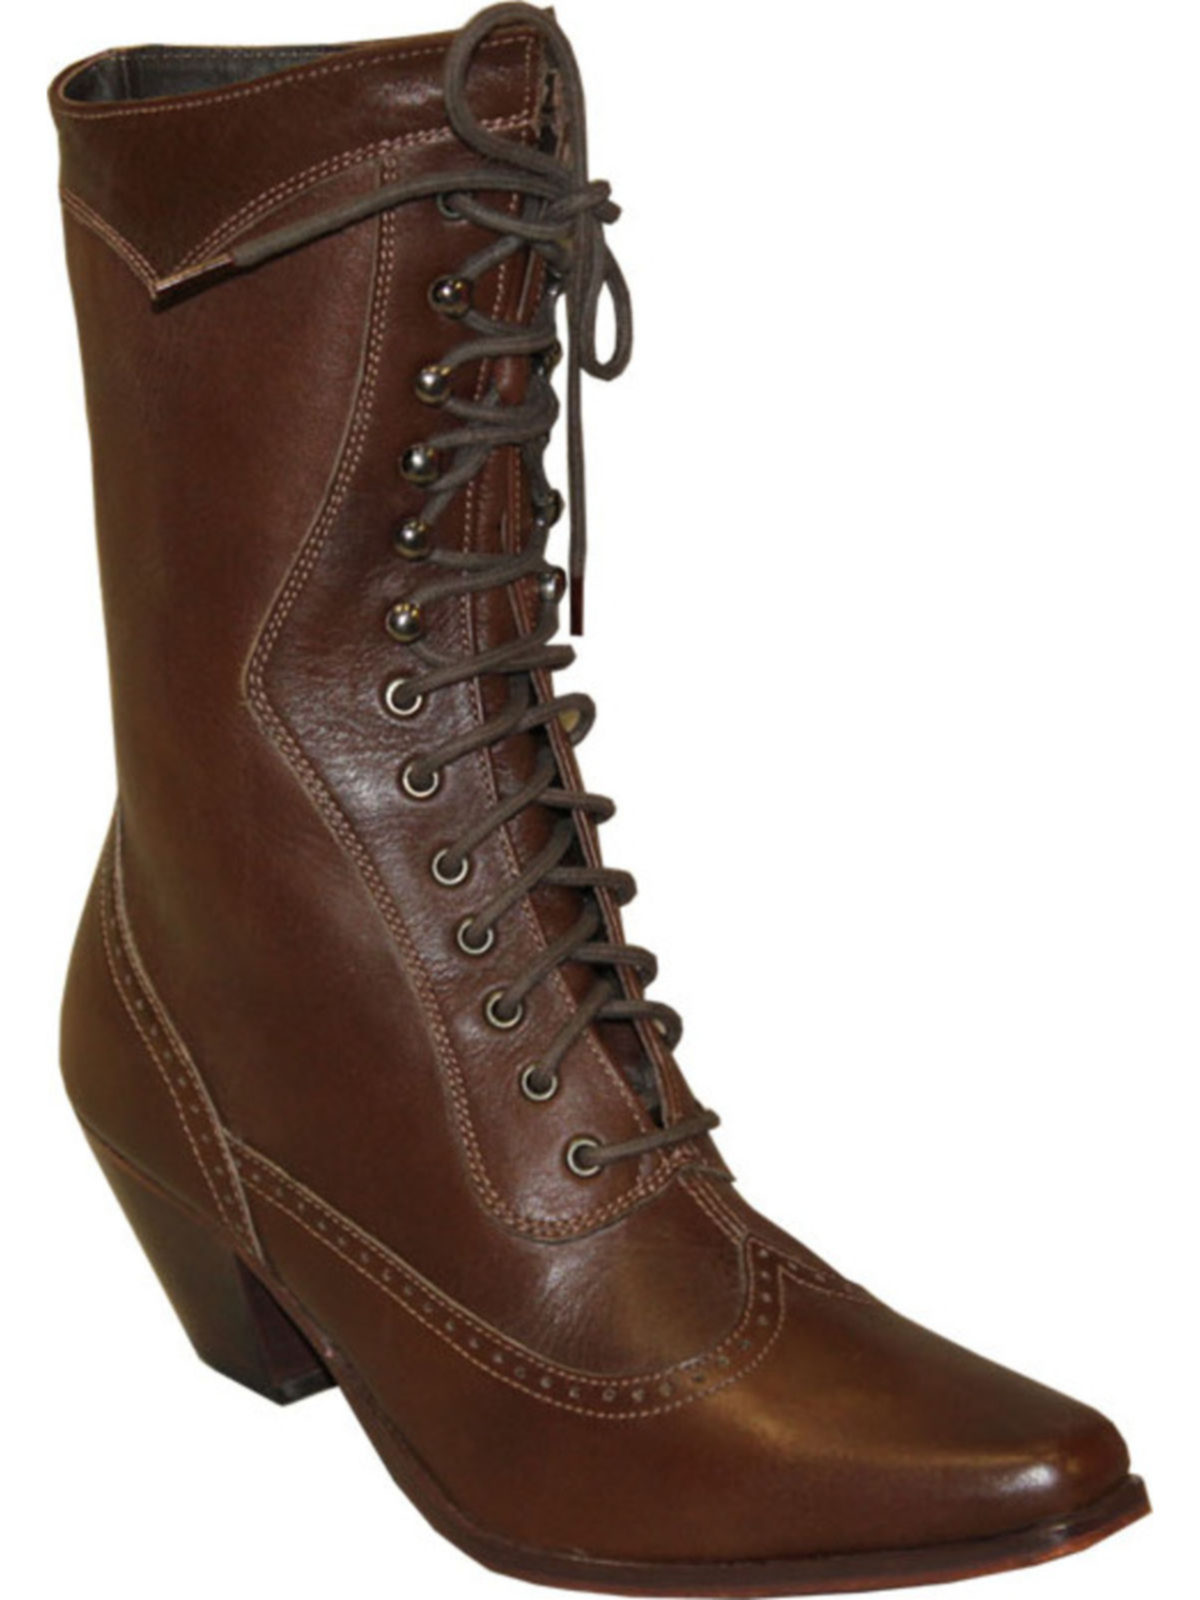 Bootamerica Rawhide Womens Brown Victorian Lace Up Boot 5011